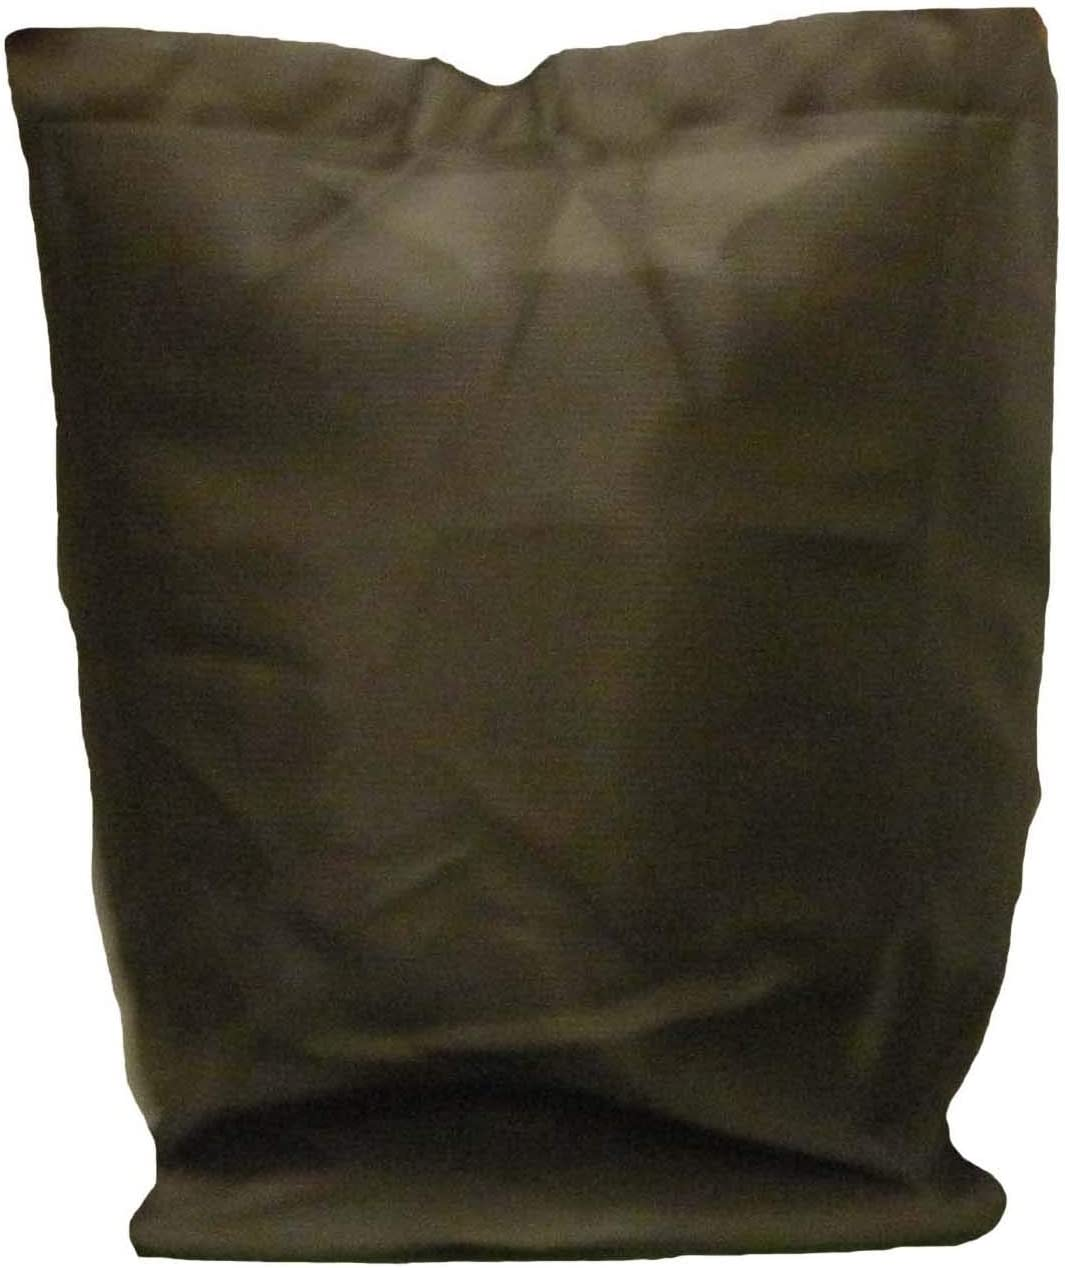 Humboldt Lowest price challenge Sale SALE% OFF Toro Wheel Horse Replacement ONLY Bag. Grass Bag